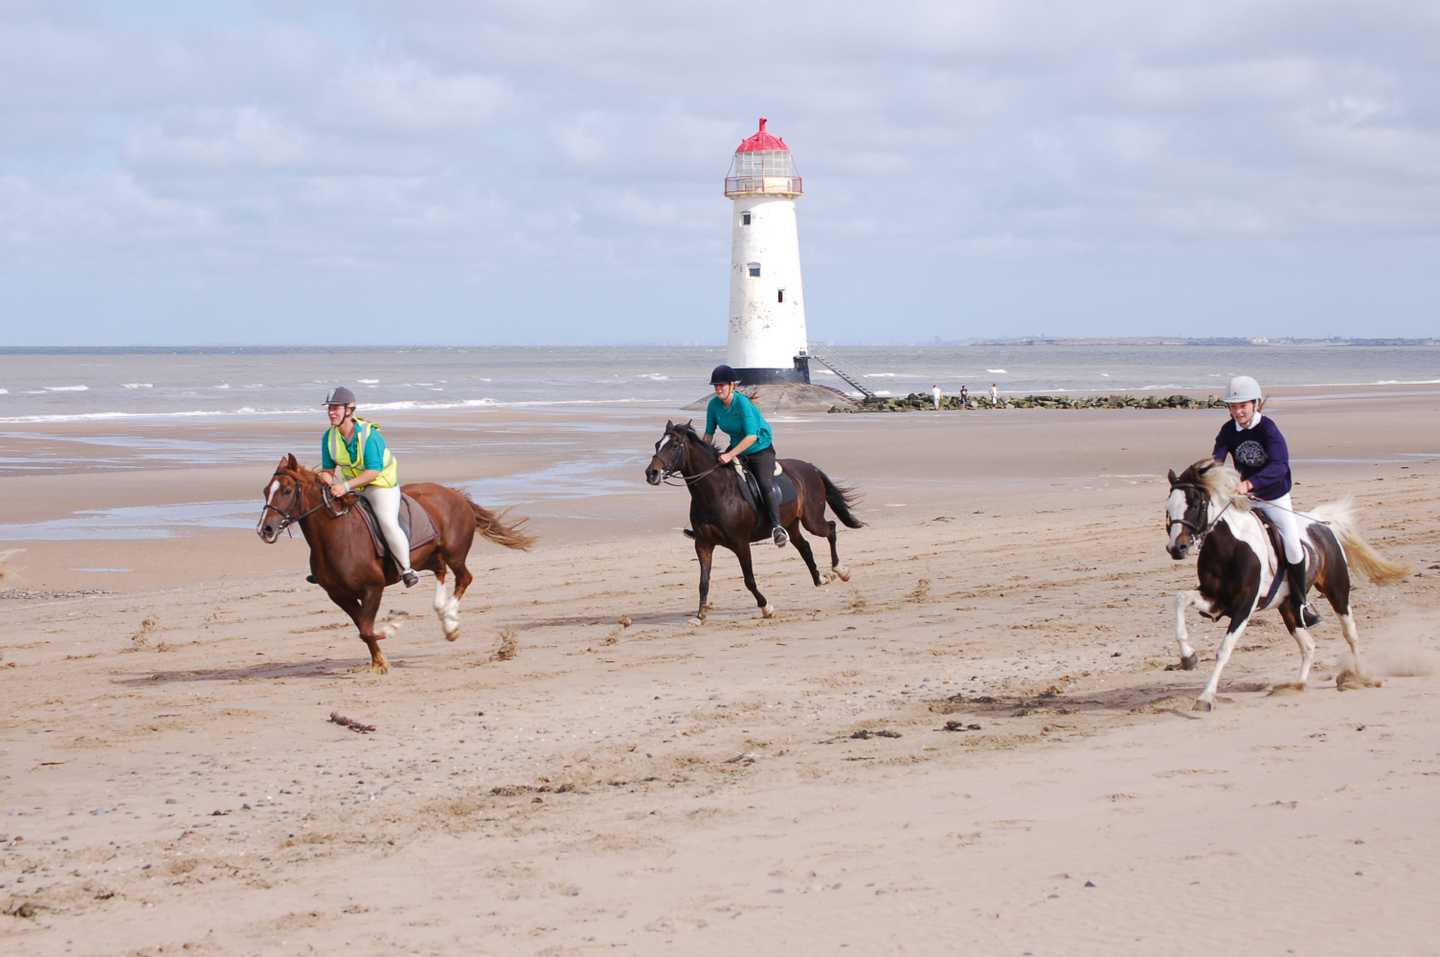 Three horses ridding along the beach with lighthouse in the background